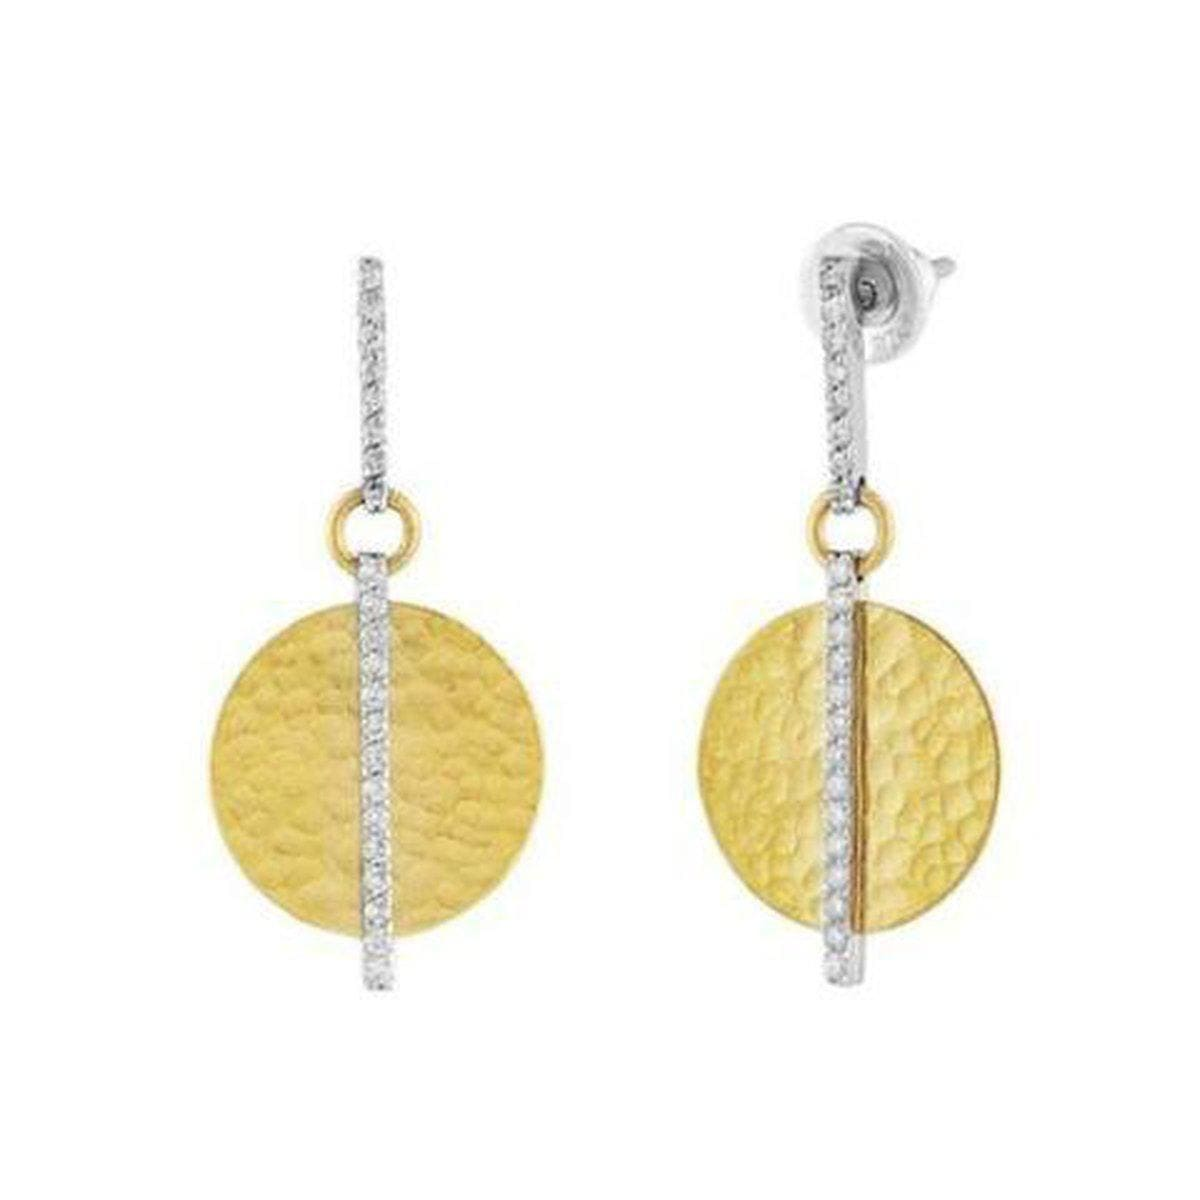 Lush 24K Gold White Diamond Earrings - EDIB-GFDI-14-SD-GURHAN-Renee Taylor Gallery